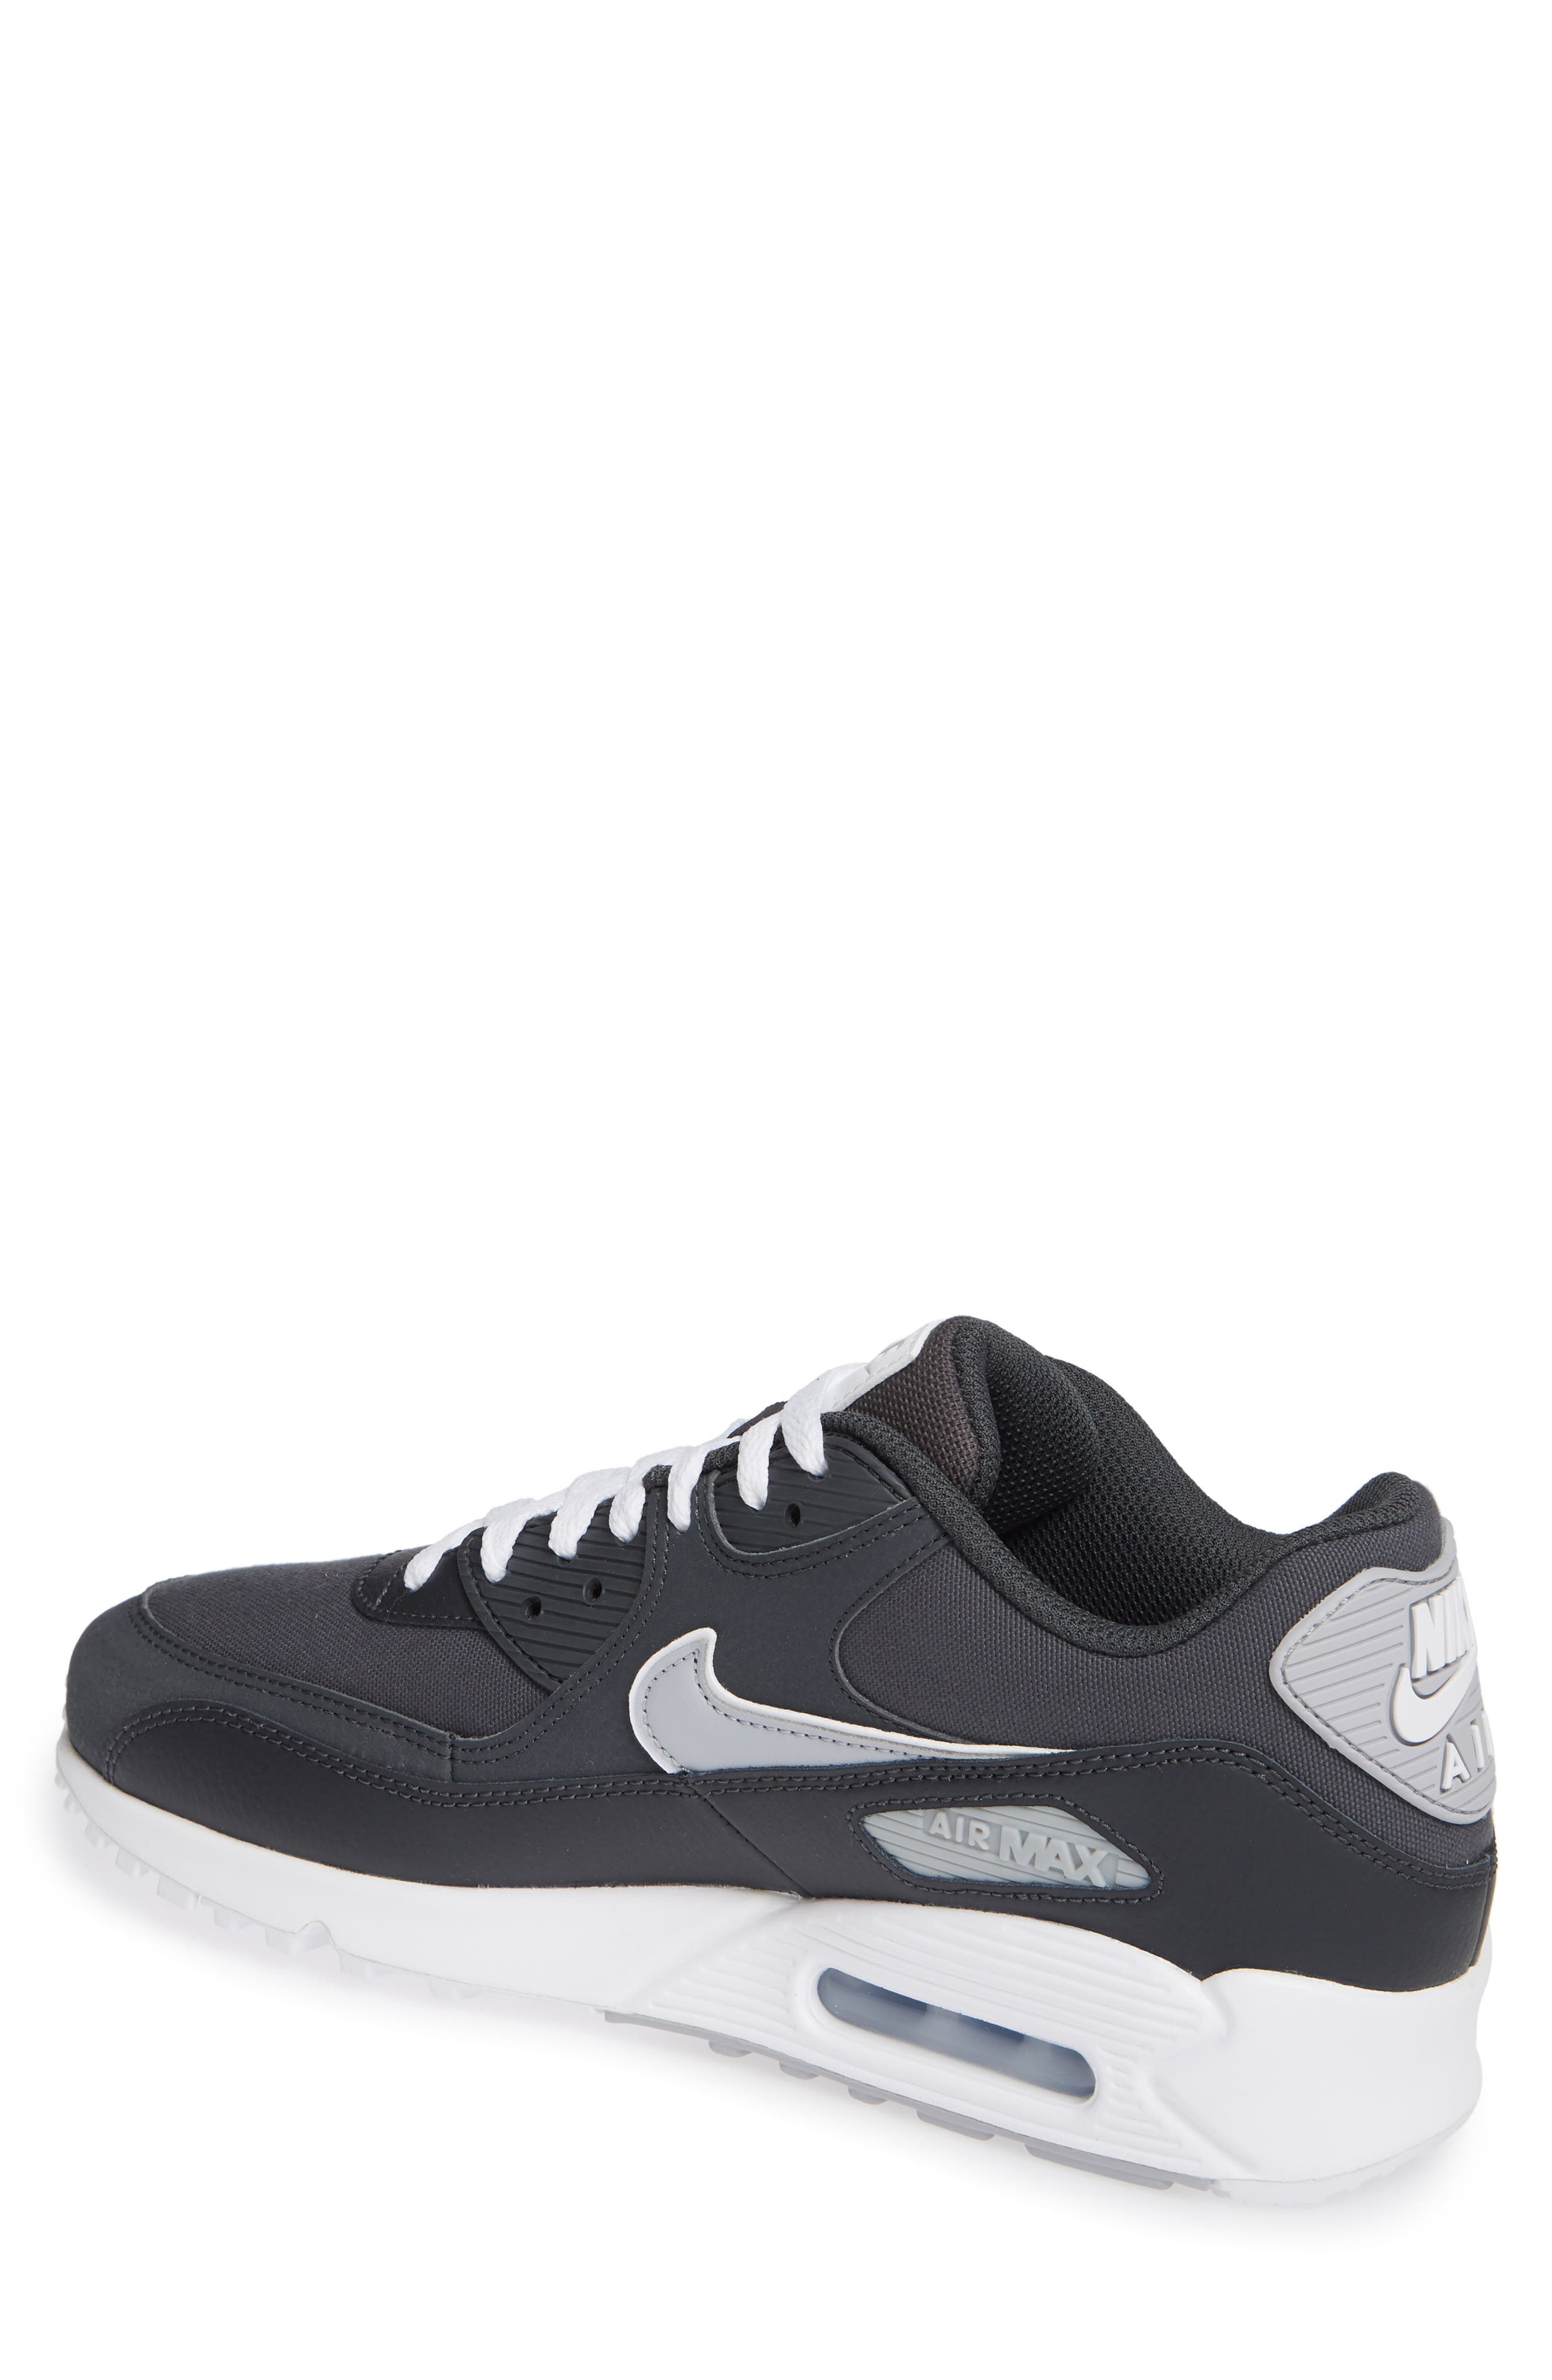 Air Max 90 Essential Sneaker,                             Alternate thumbnail 2, color,                             ANTHRACITE/ WOLF GREY/ WHITE